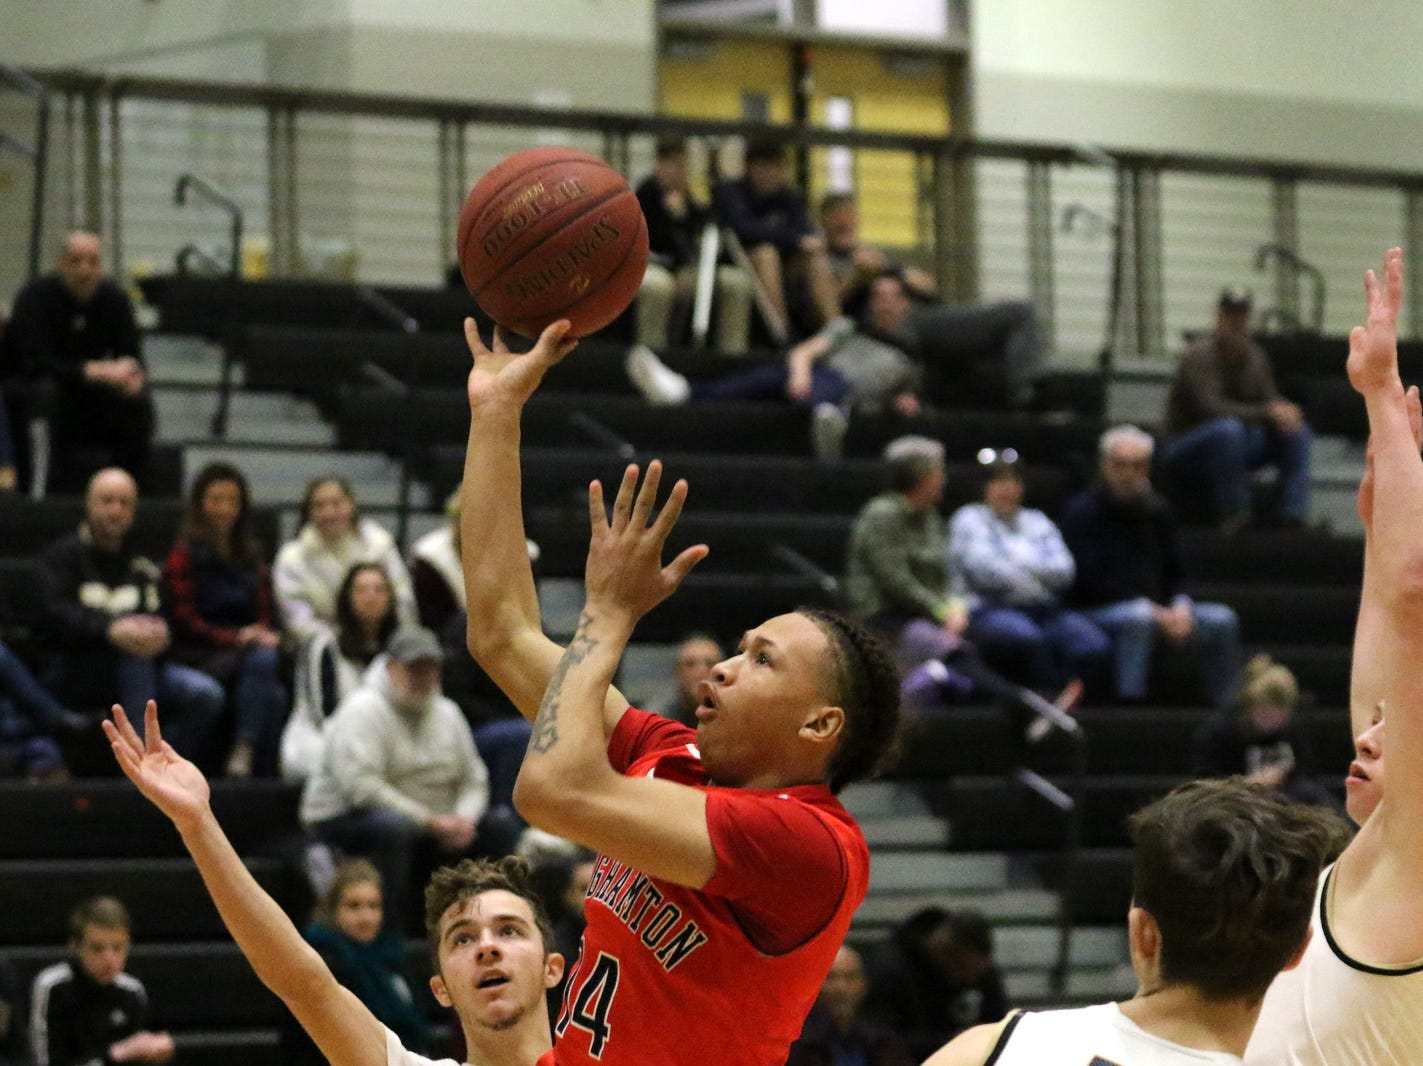 Action from the Binghamton boys basketball team's 71-66 win over Corning on Feb. 2, 2019 at Corning-Painted Post High School.